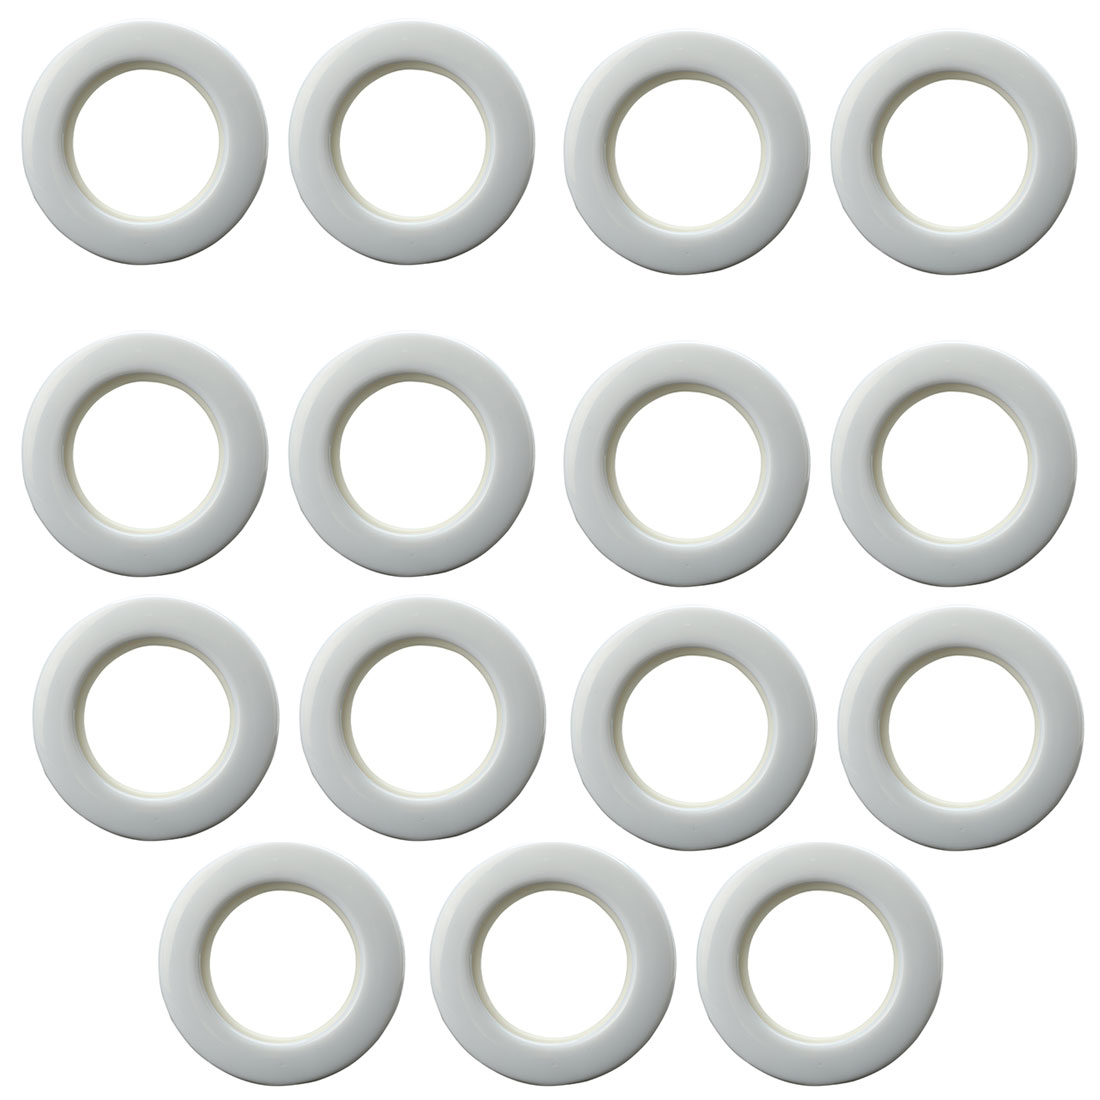 Bathroom Shower Window Curtain Ring Hook Sliding Hanging Hangers White 15Pcs